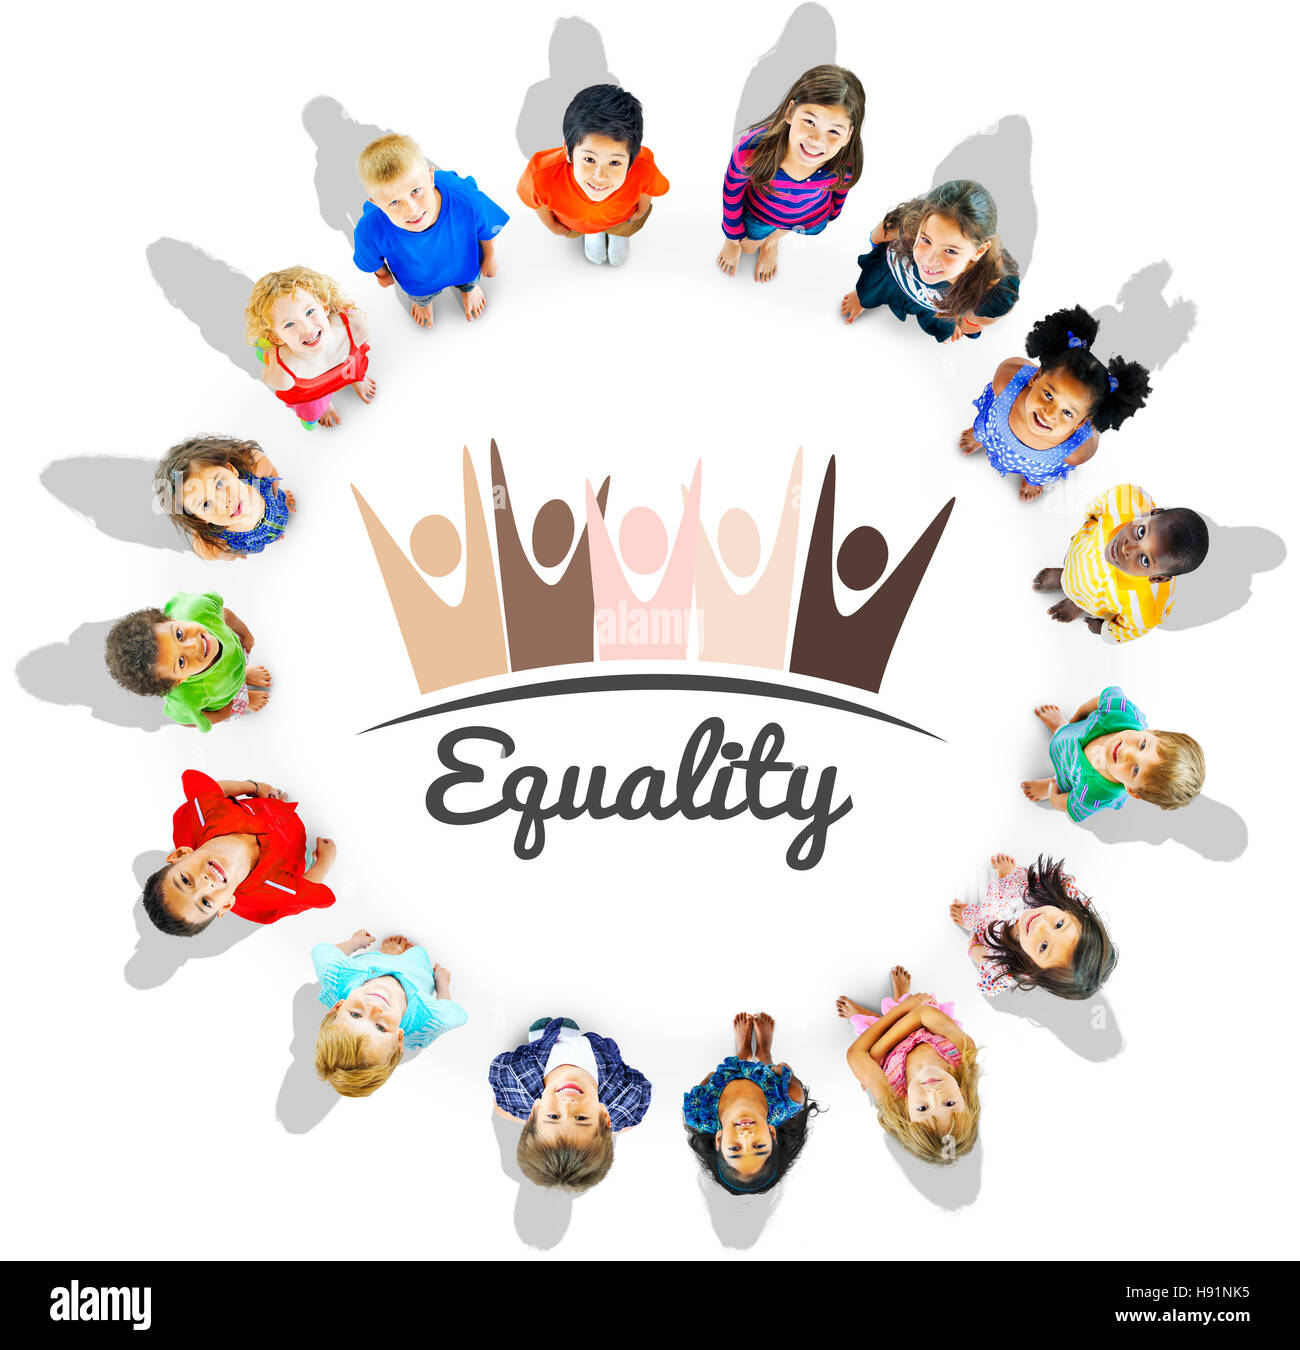 Equality Fairness Fundamental Rights Racist Discrimination Concept - Stock Image